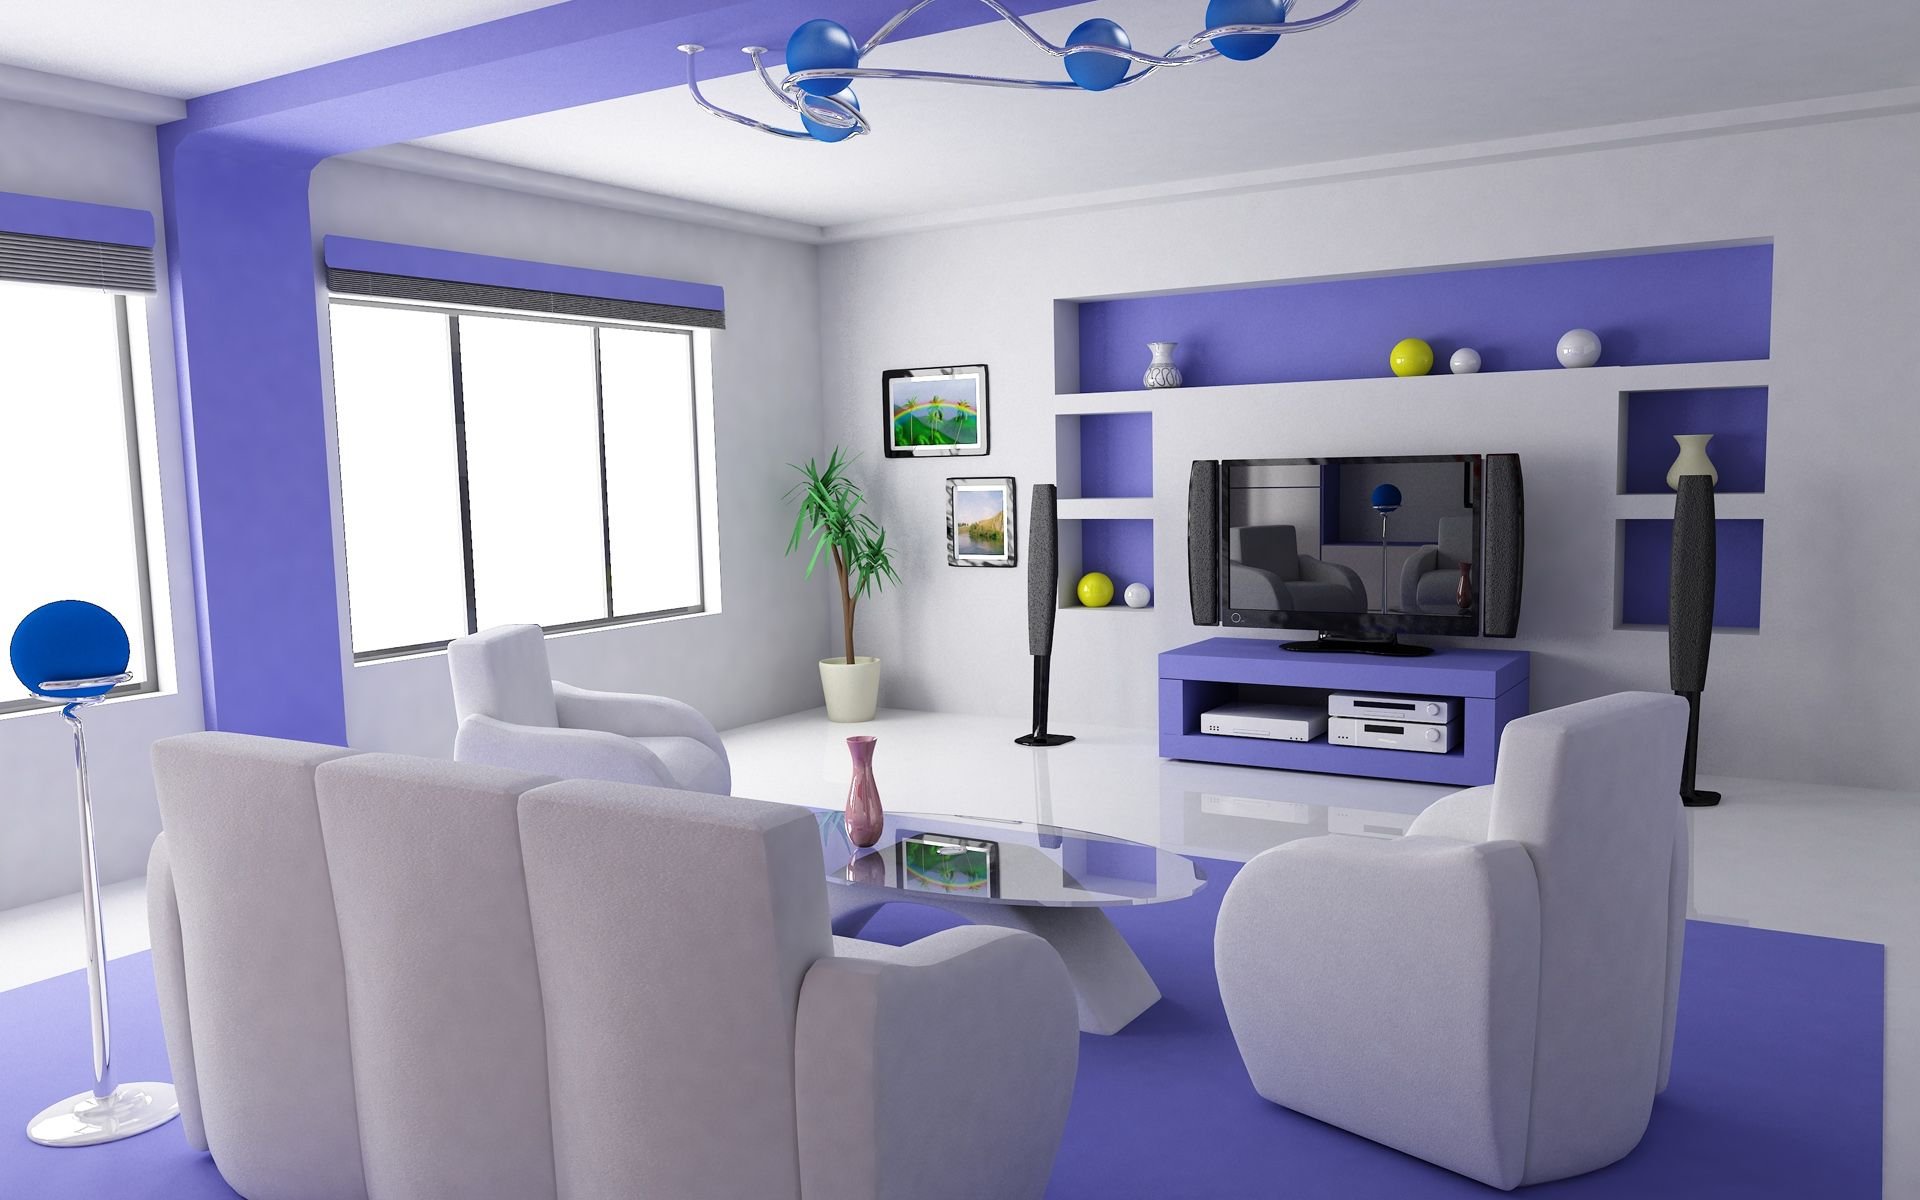 35 BEST INTERIOR DESIGNS YOU MUST BE SEARCHING FOR | Living room ...